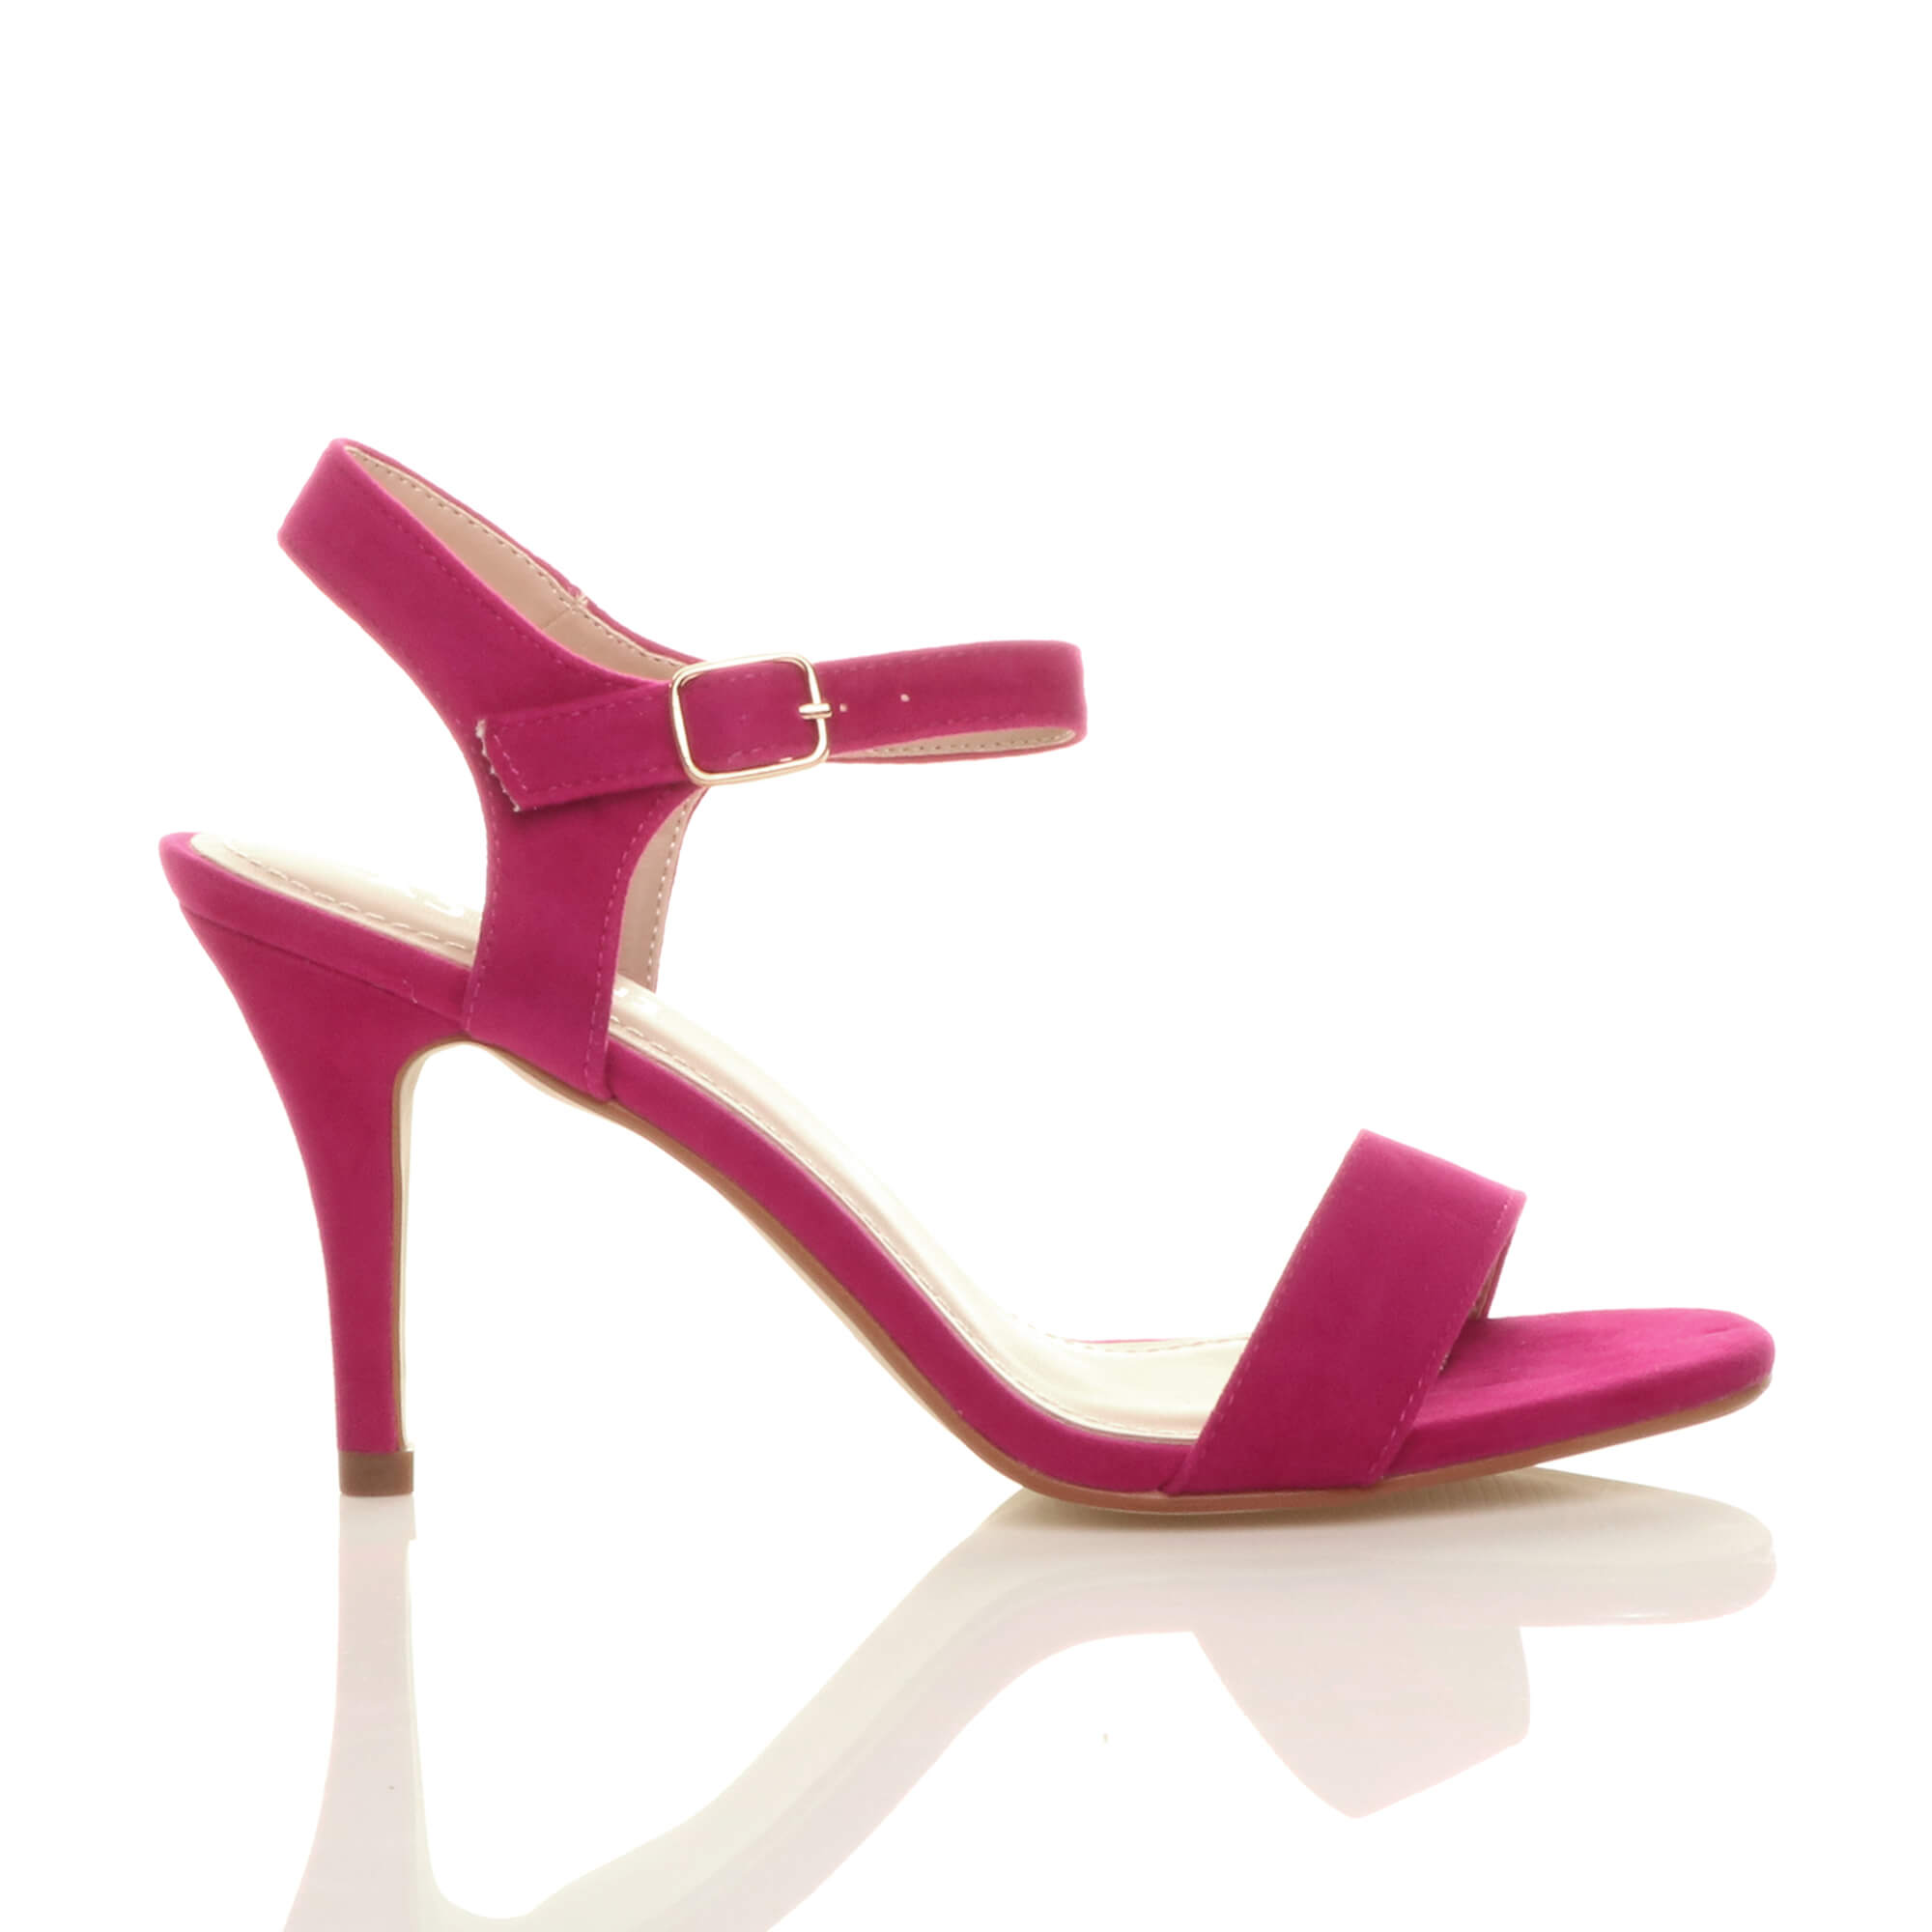 WOMENS-LADIES-HIGH-HEEL-BUCKLE-STRAPPY-BASIC-BARELY-THERE-SANDALS-SHOES-SIZE thumbnail 31